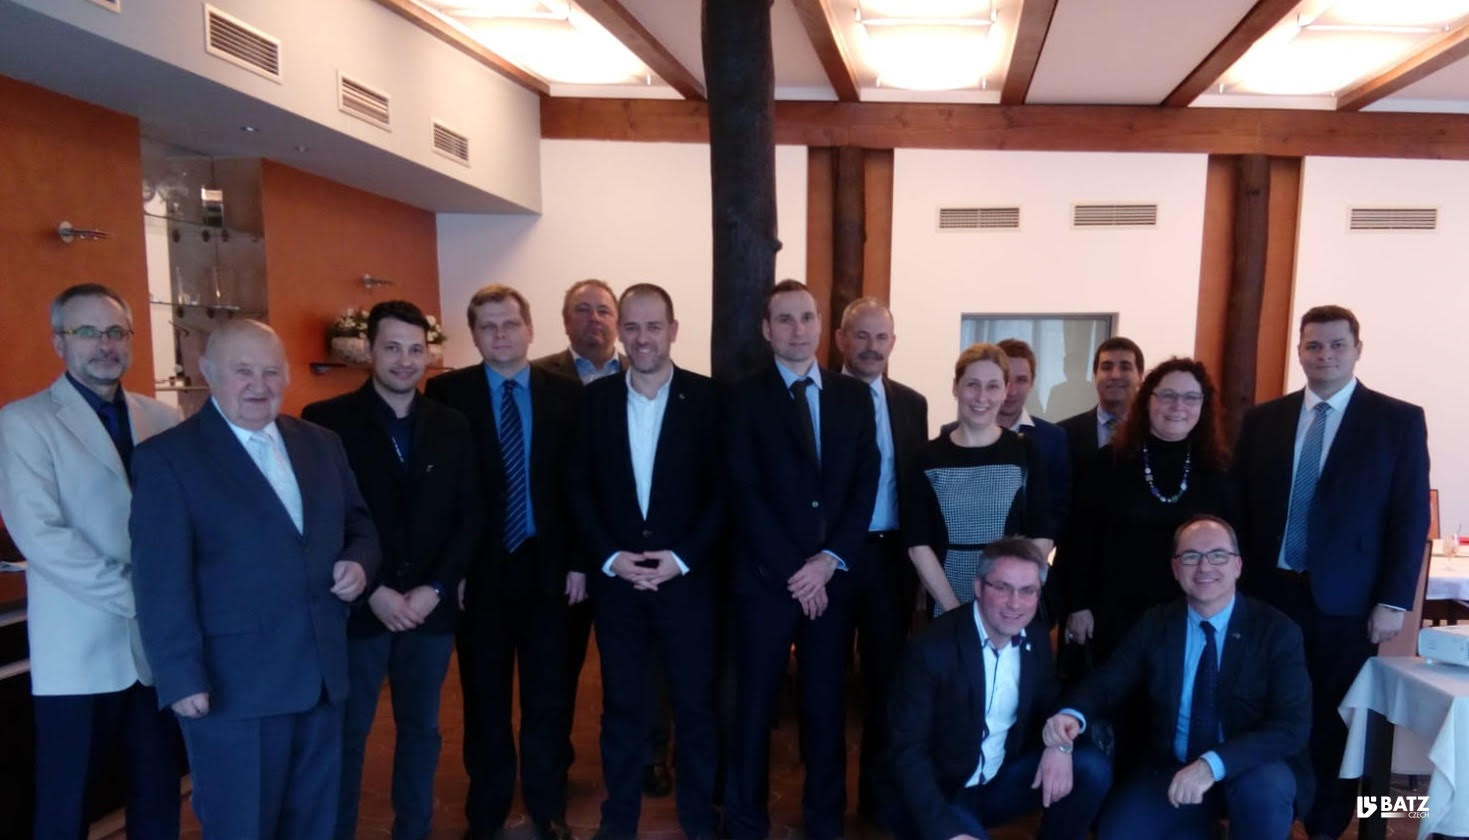 Moravian government and industry meets Batz czech